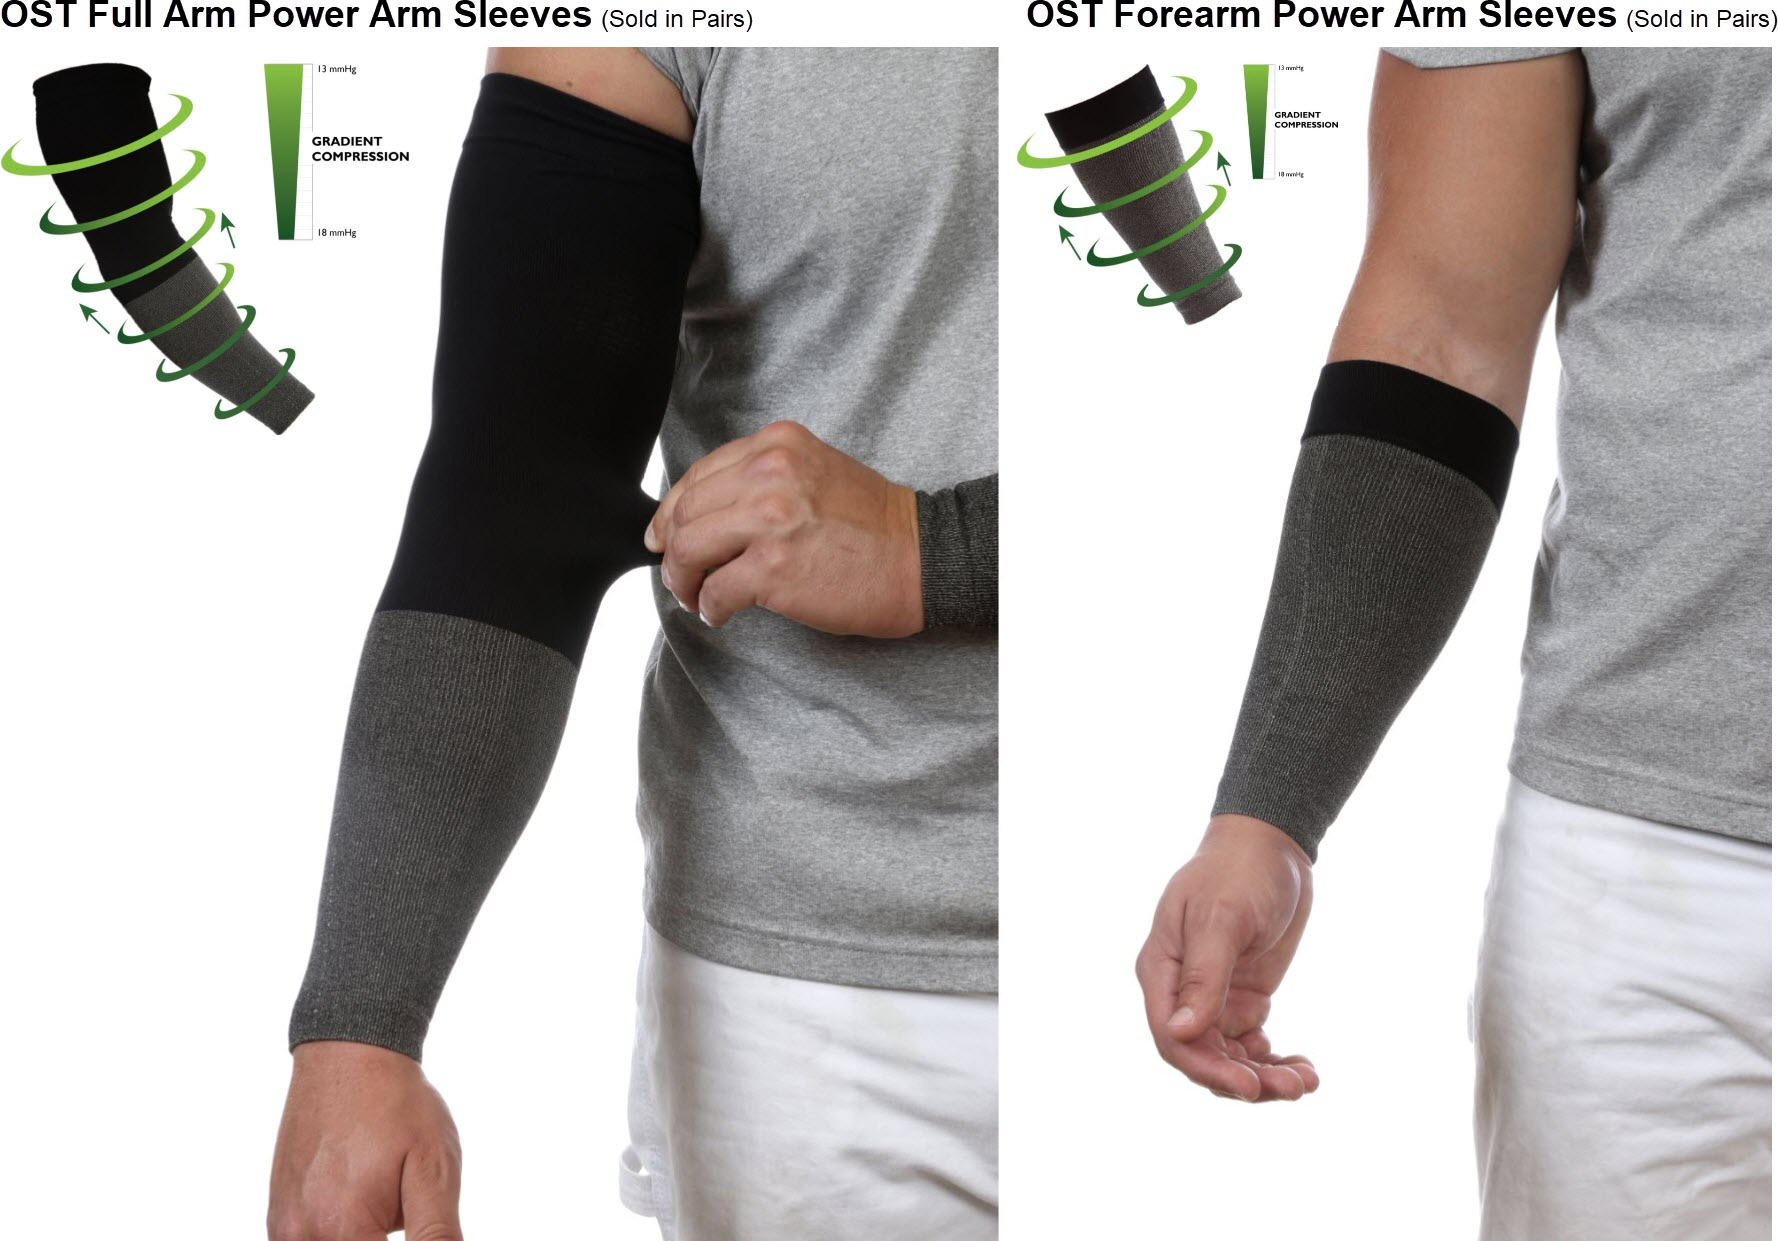 Onsite Therapy Power Arm Sleeves